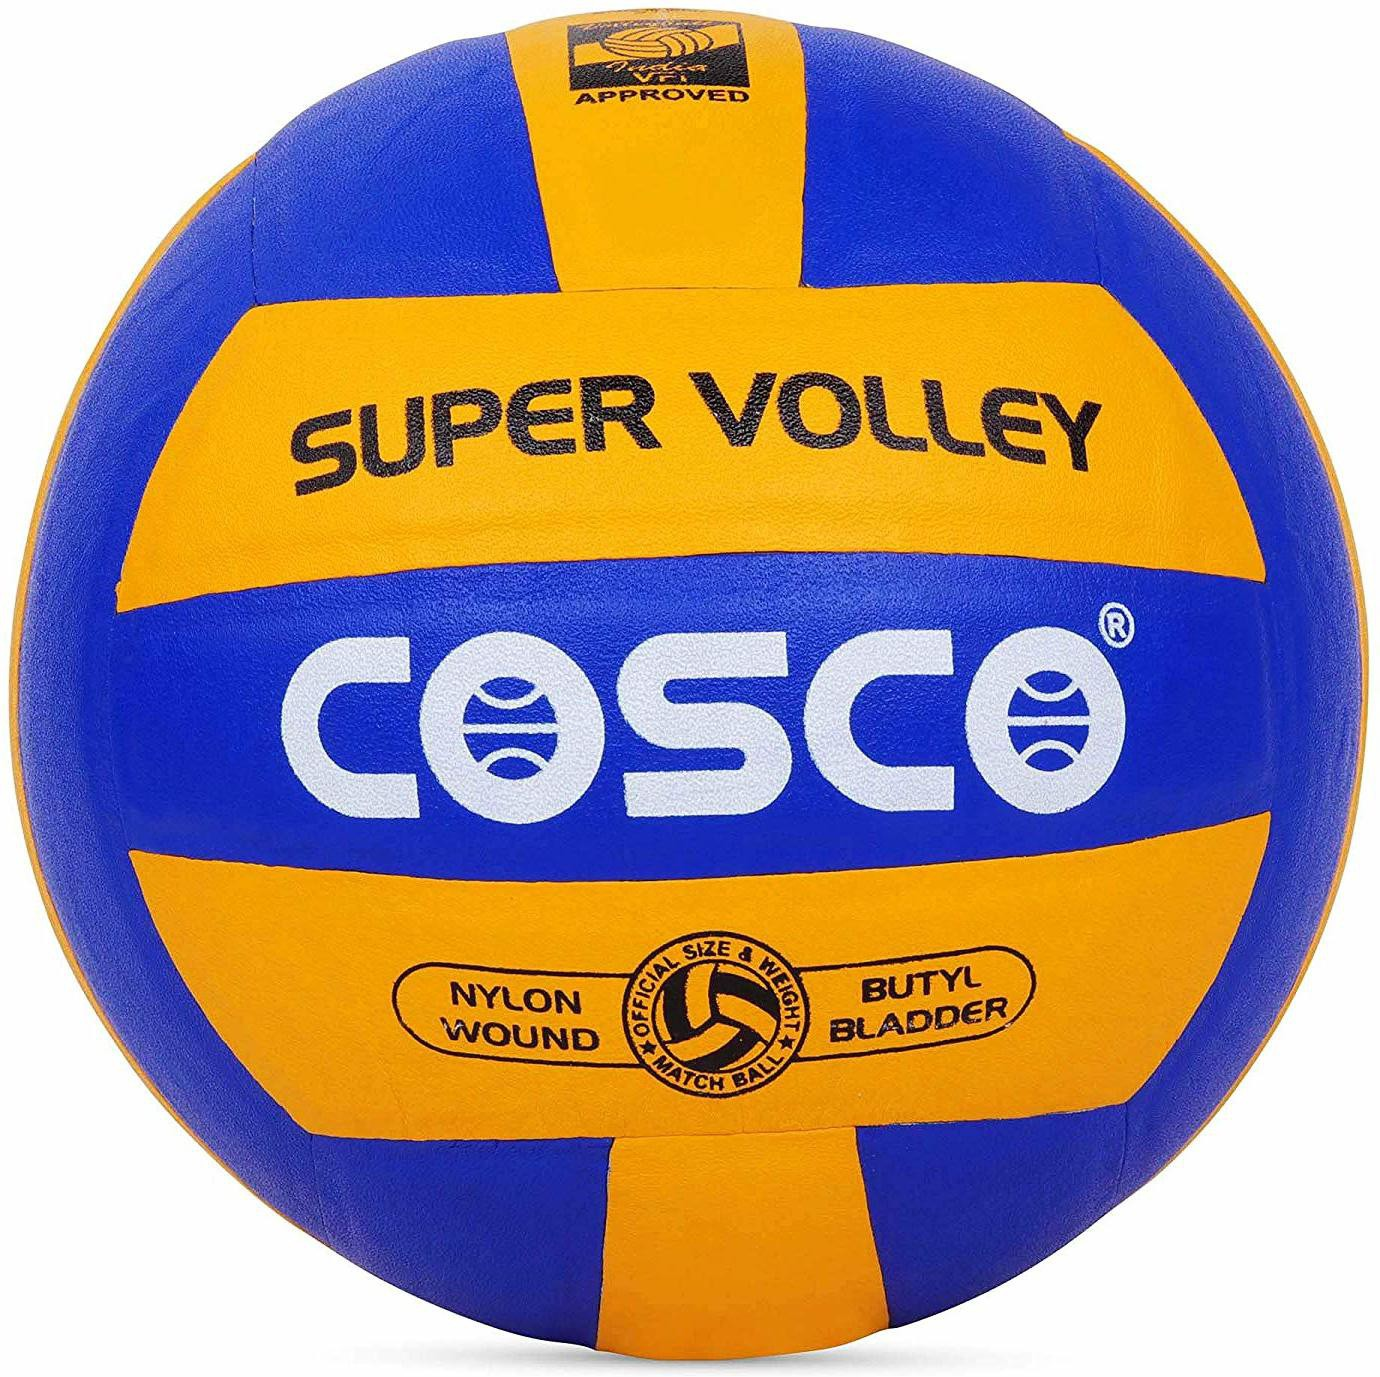 Cosco Super vollyball Volleyball - Size: 4 Pack of 1, Yellow, Blue